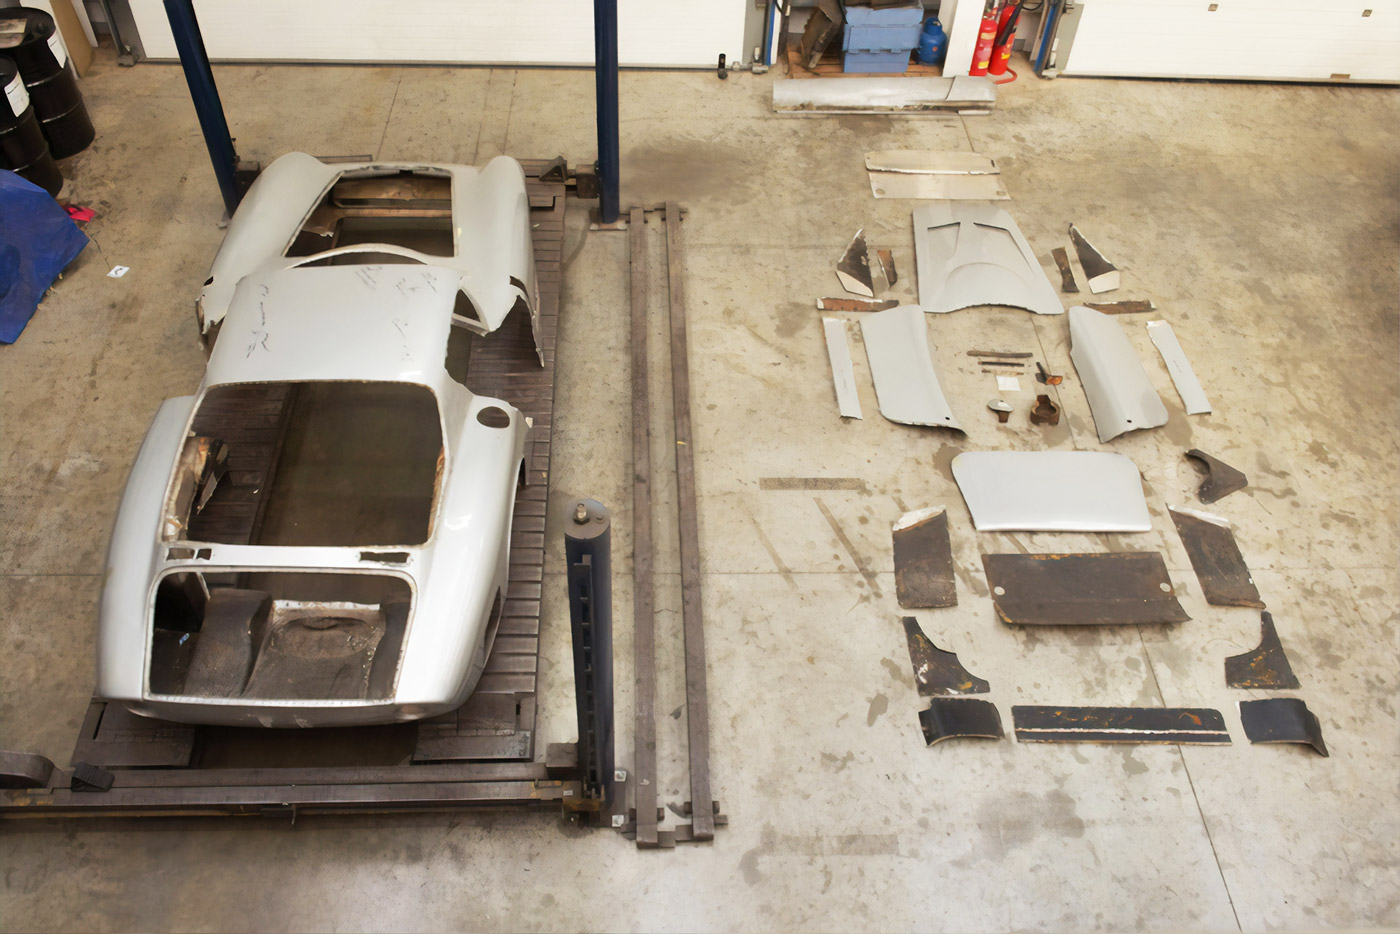 The Thornley Kelham Bizzarrini 5300 GT Strada in pieces.